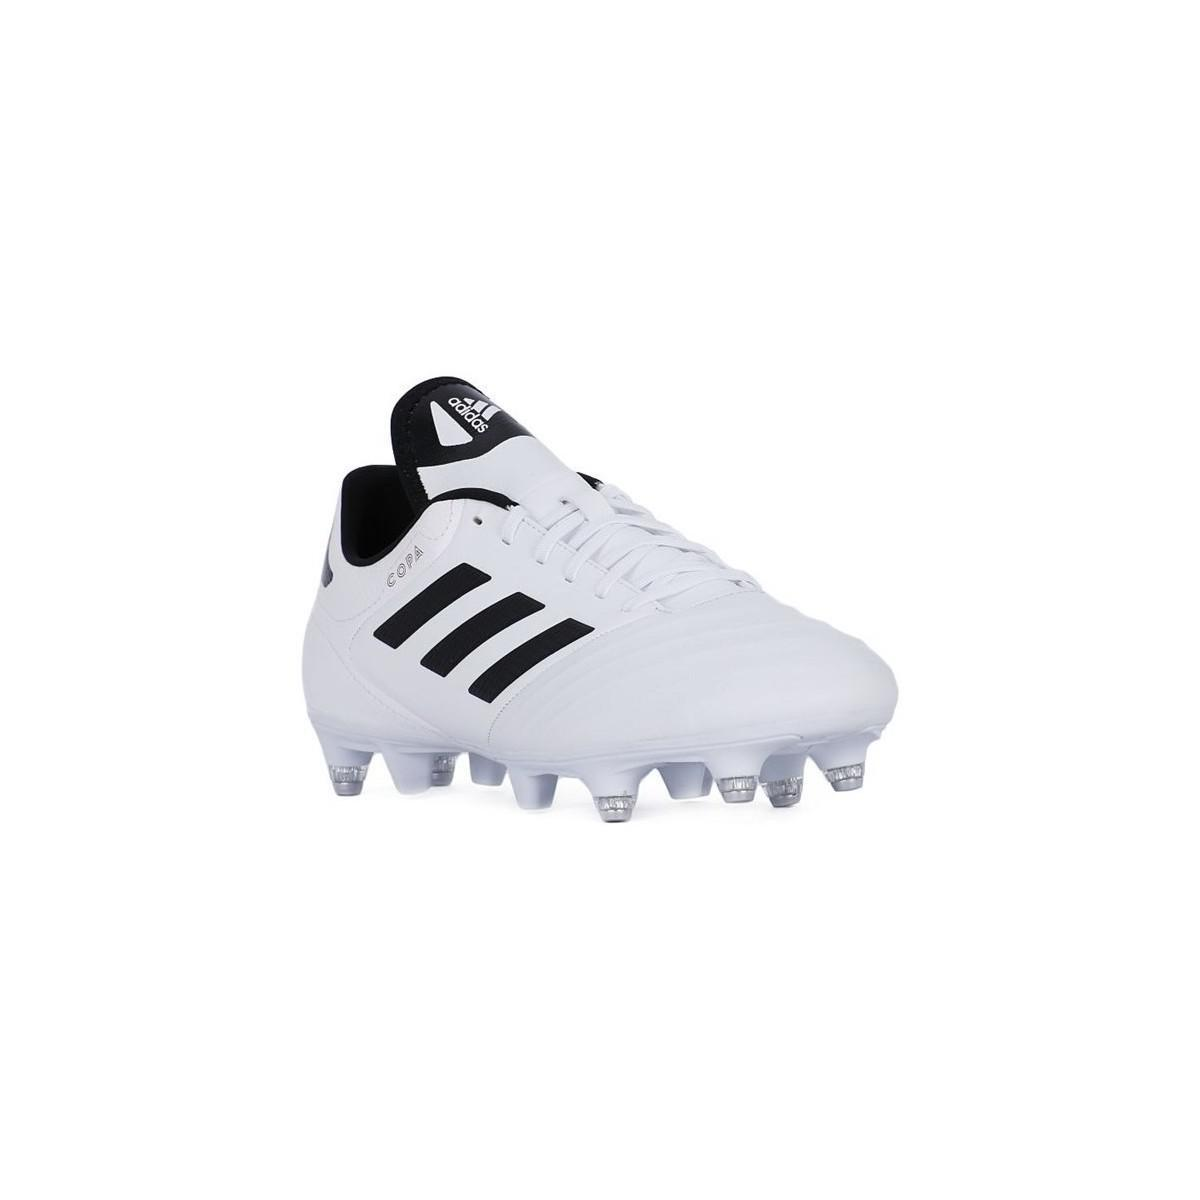 08d0a8d54 adidas Copa 183 Sg Men's Football Boots In White in White for Men - Lyst